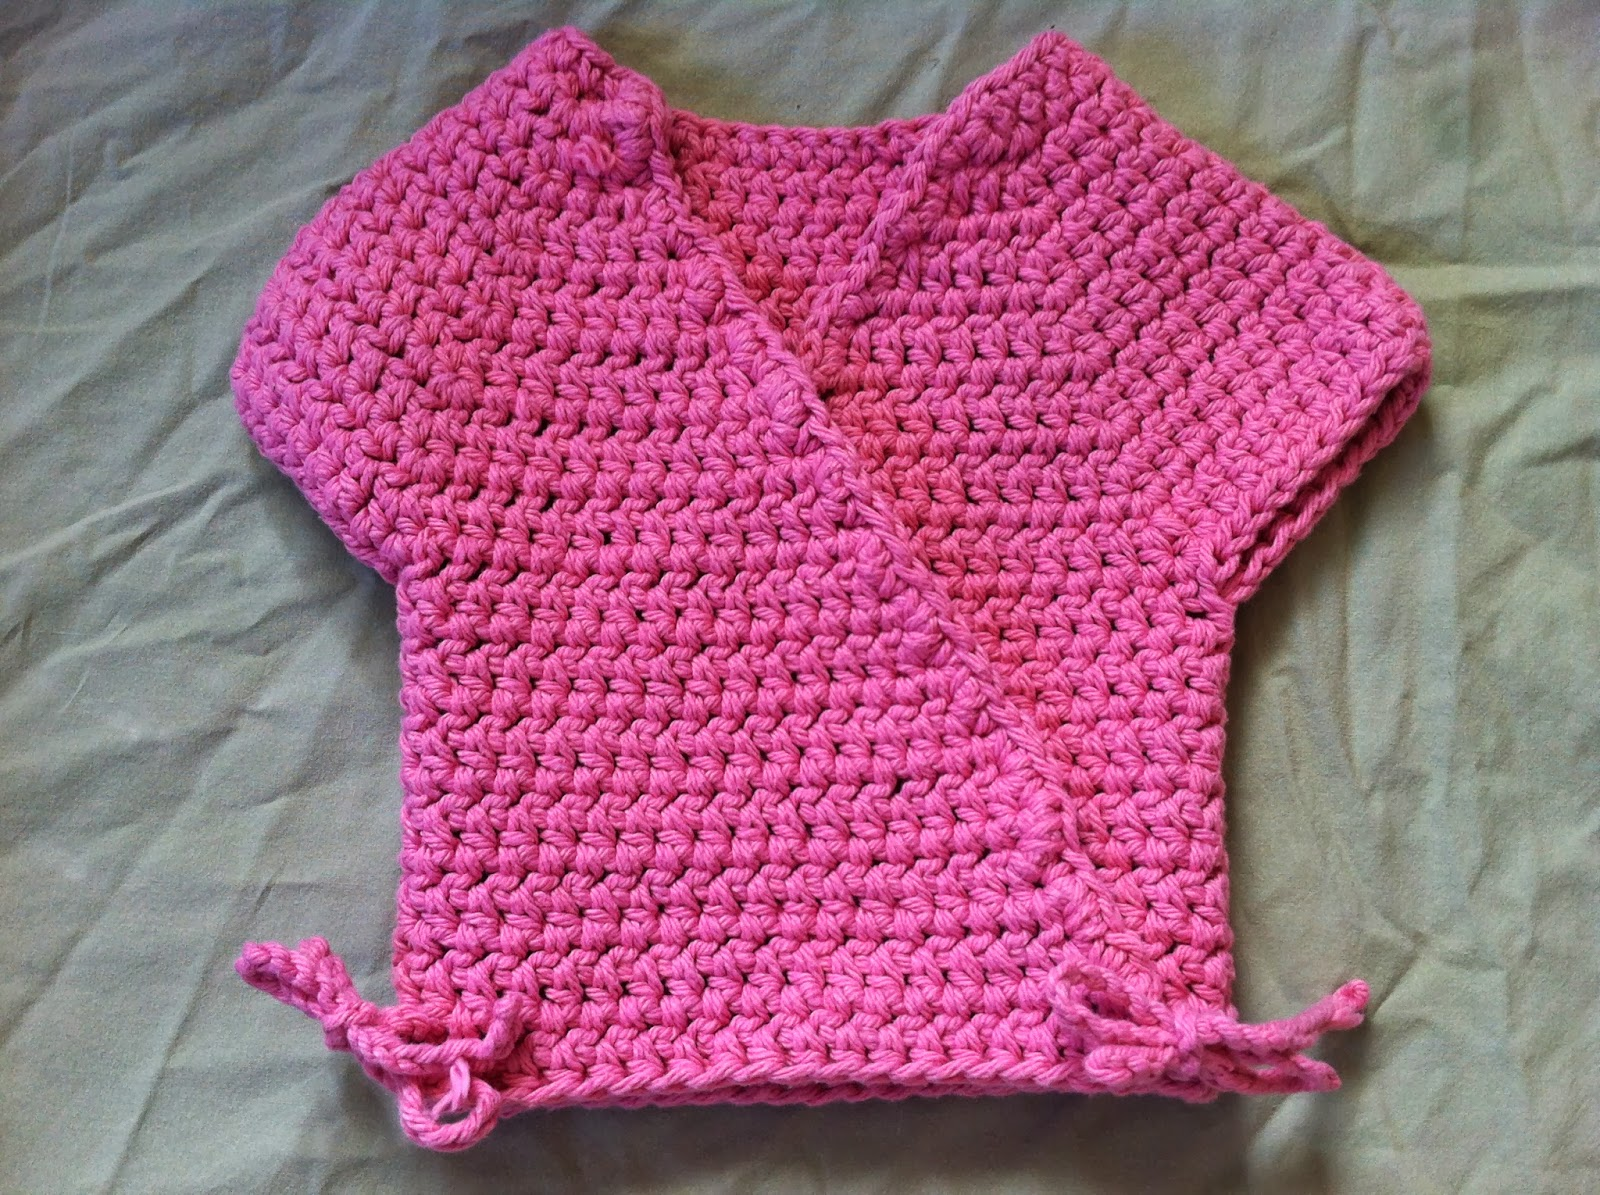 Crochet Patterns For Baby Washcloths : Crochet Baby Kimono Wrap Cardigan - Free Pattern Not My ...